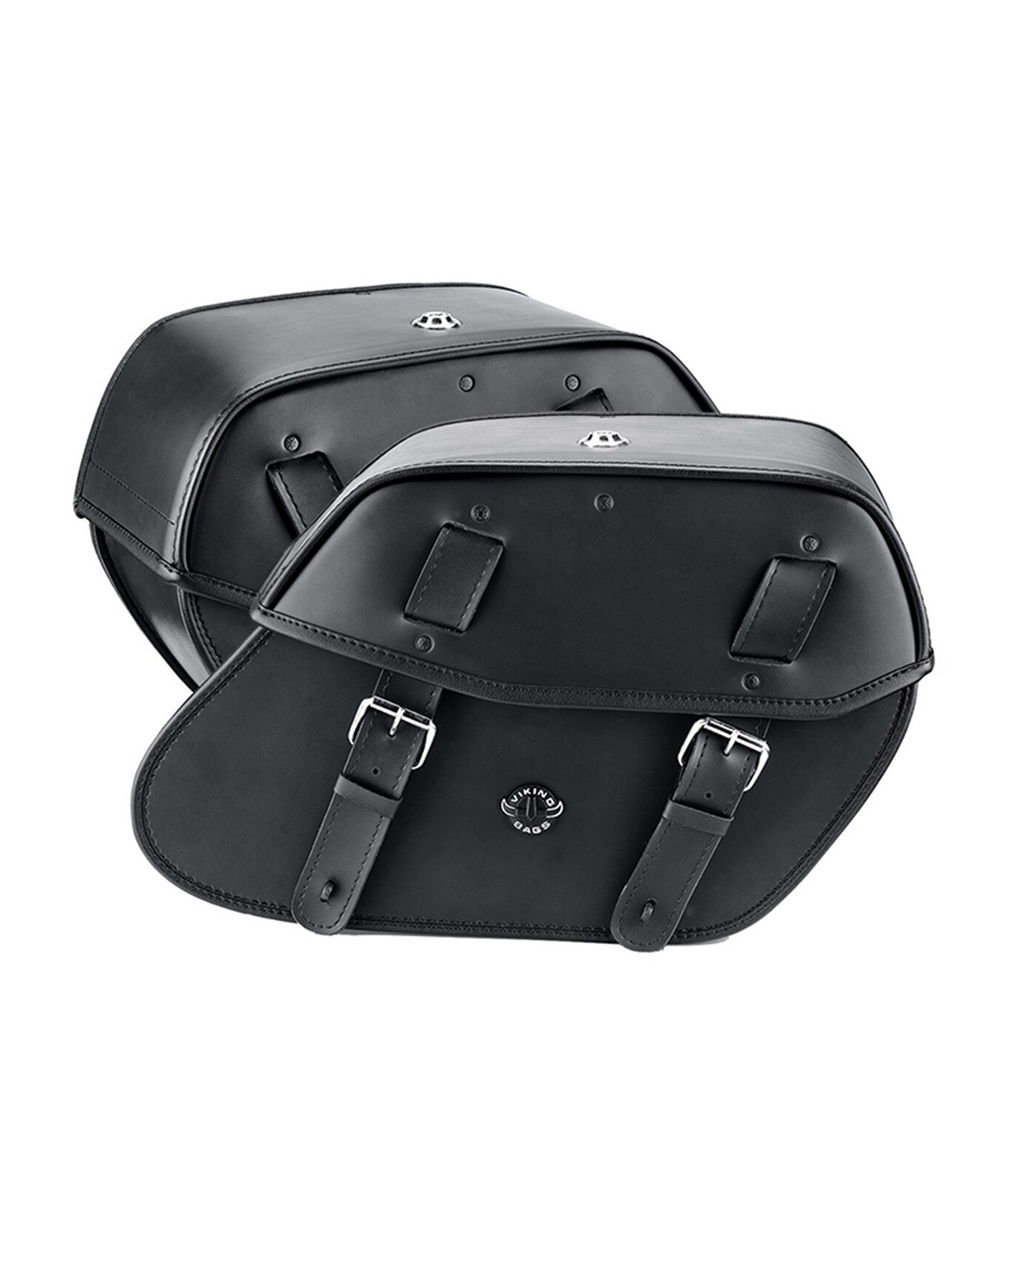 Viking Odin Large Motorcycle Saddlebags For Harley Softail Breakout Both Bags View